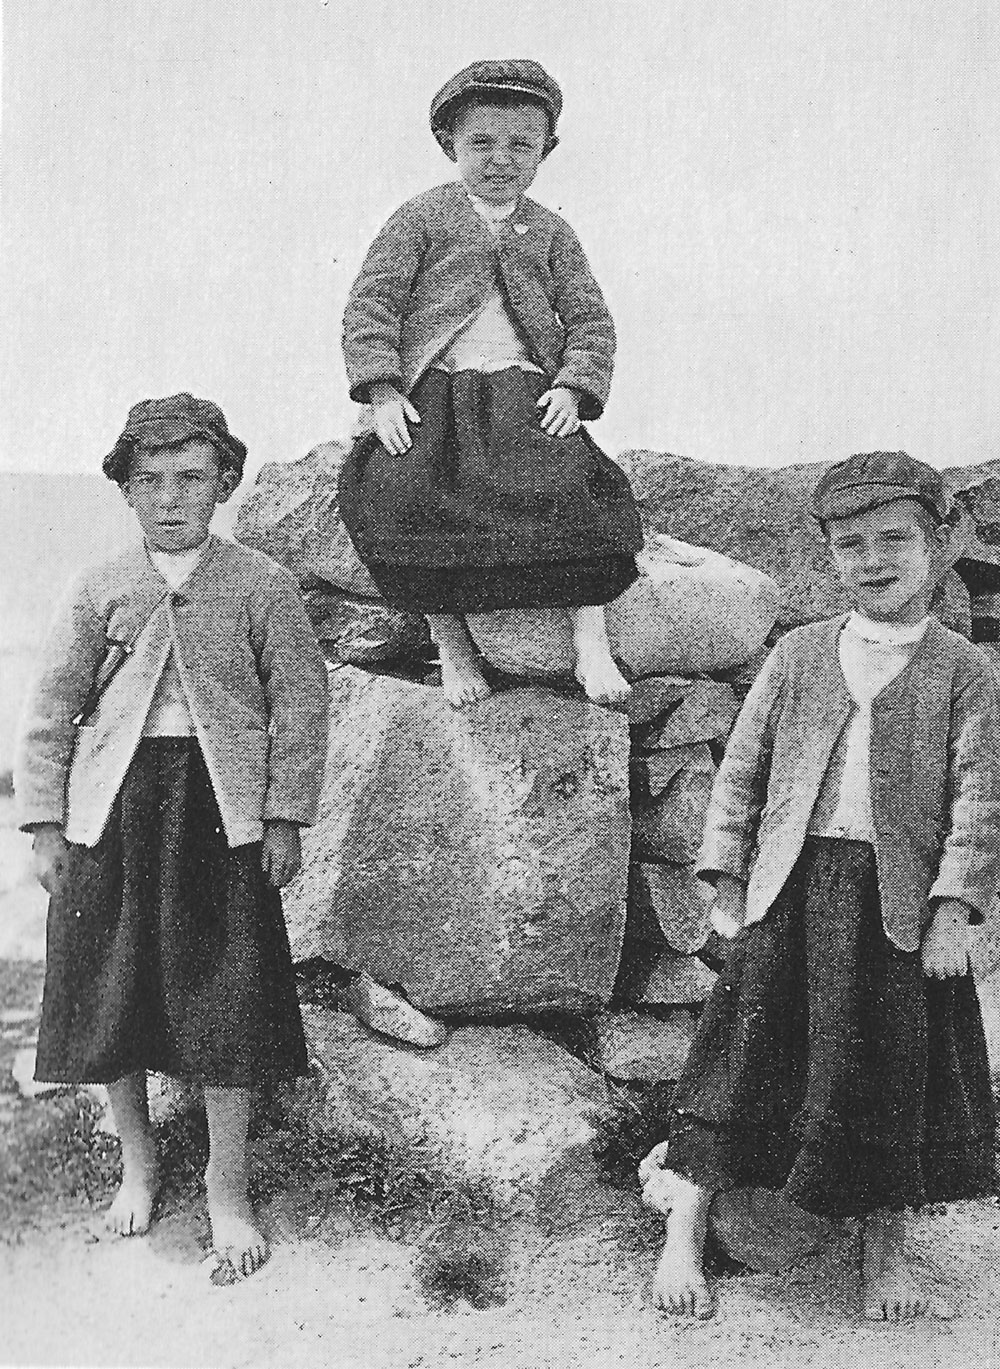 Cheating the fairies: it was a tradition in County Galway to dress boys up to the age as girls to prevent them being taken by fairies. Photo by Donn Byrne, 1927.